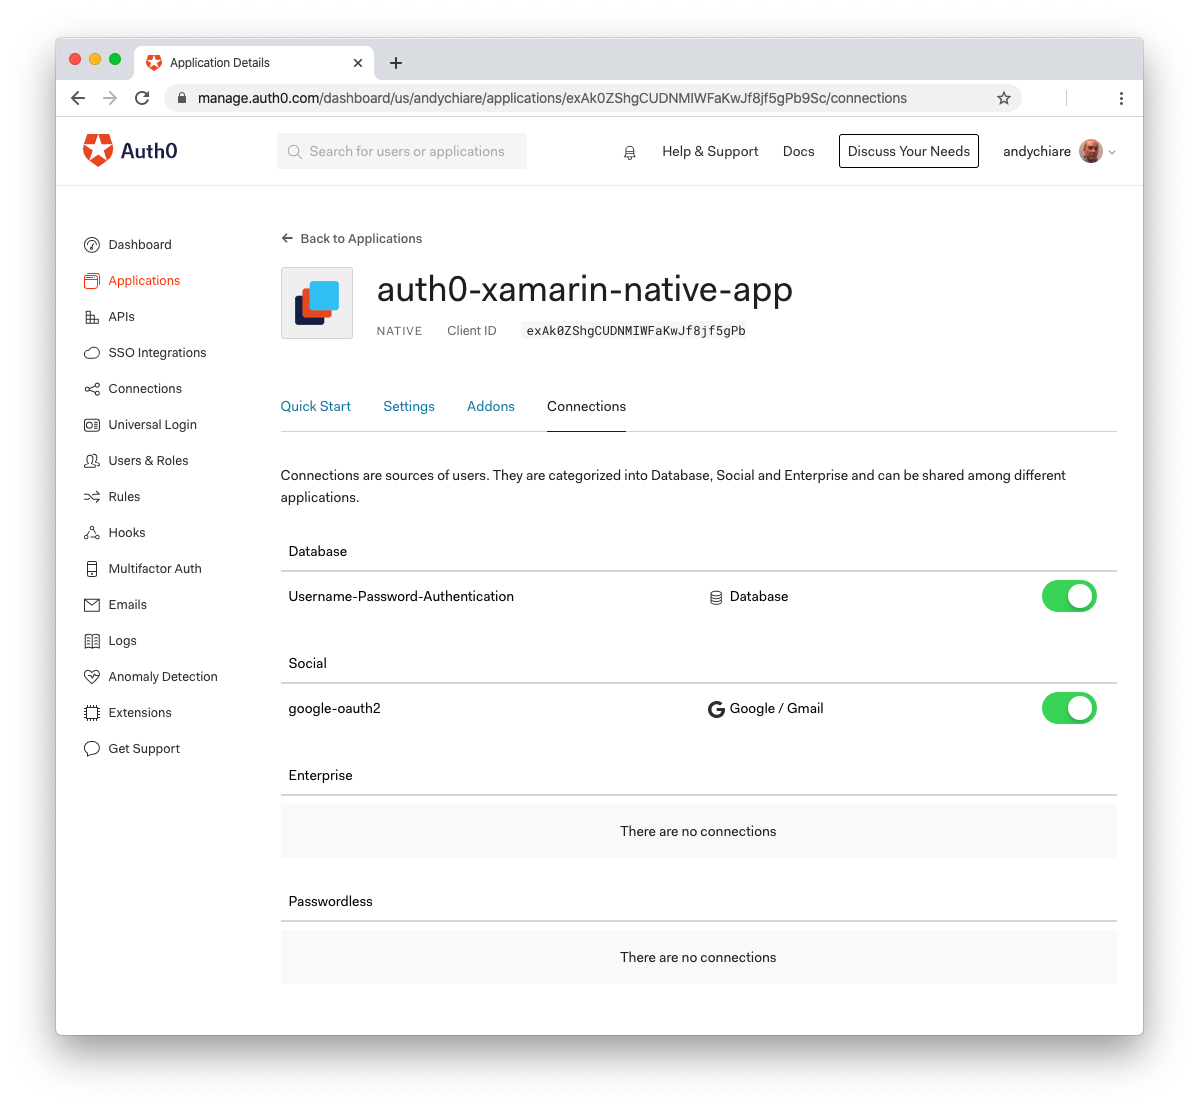 Enable Google login in Auth0 dashboard